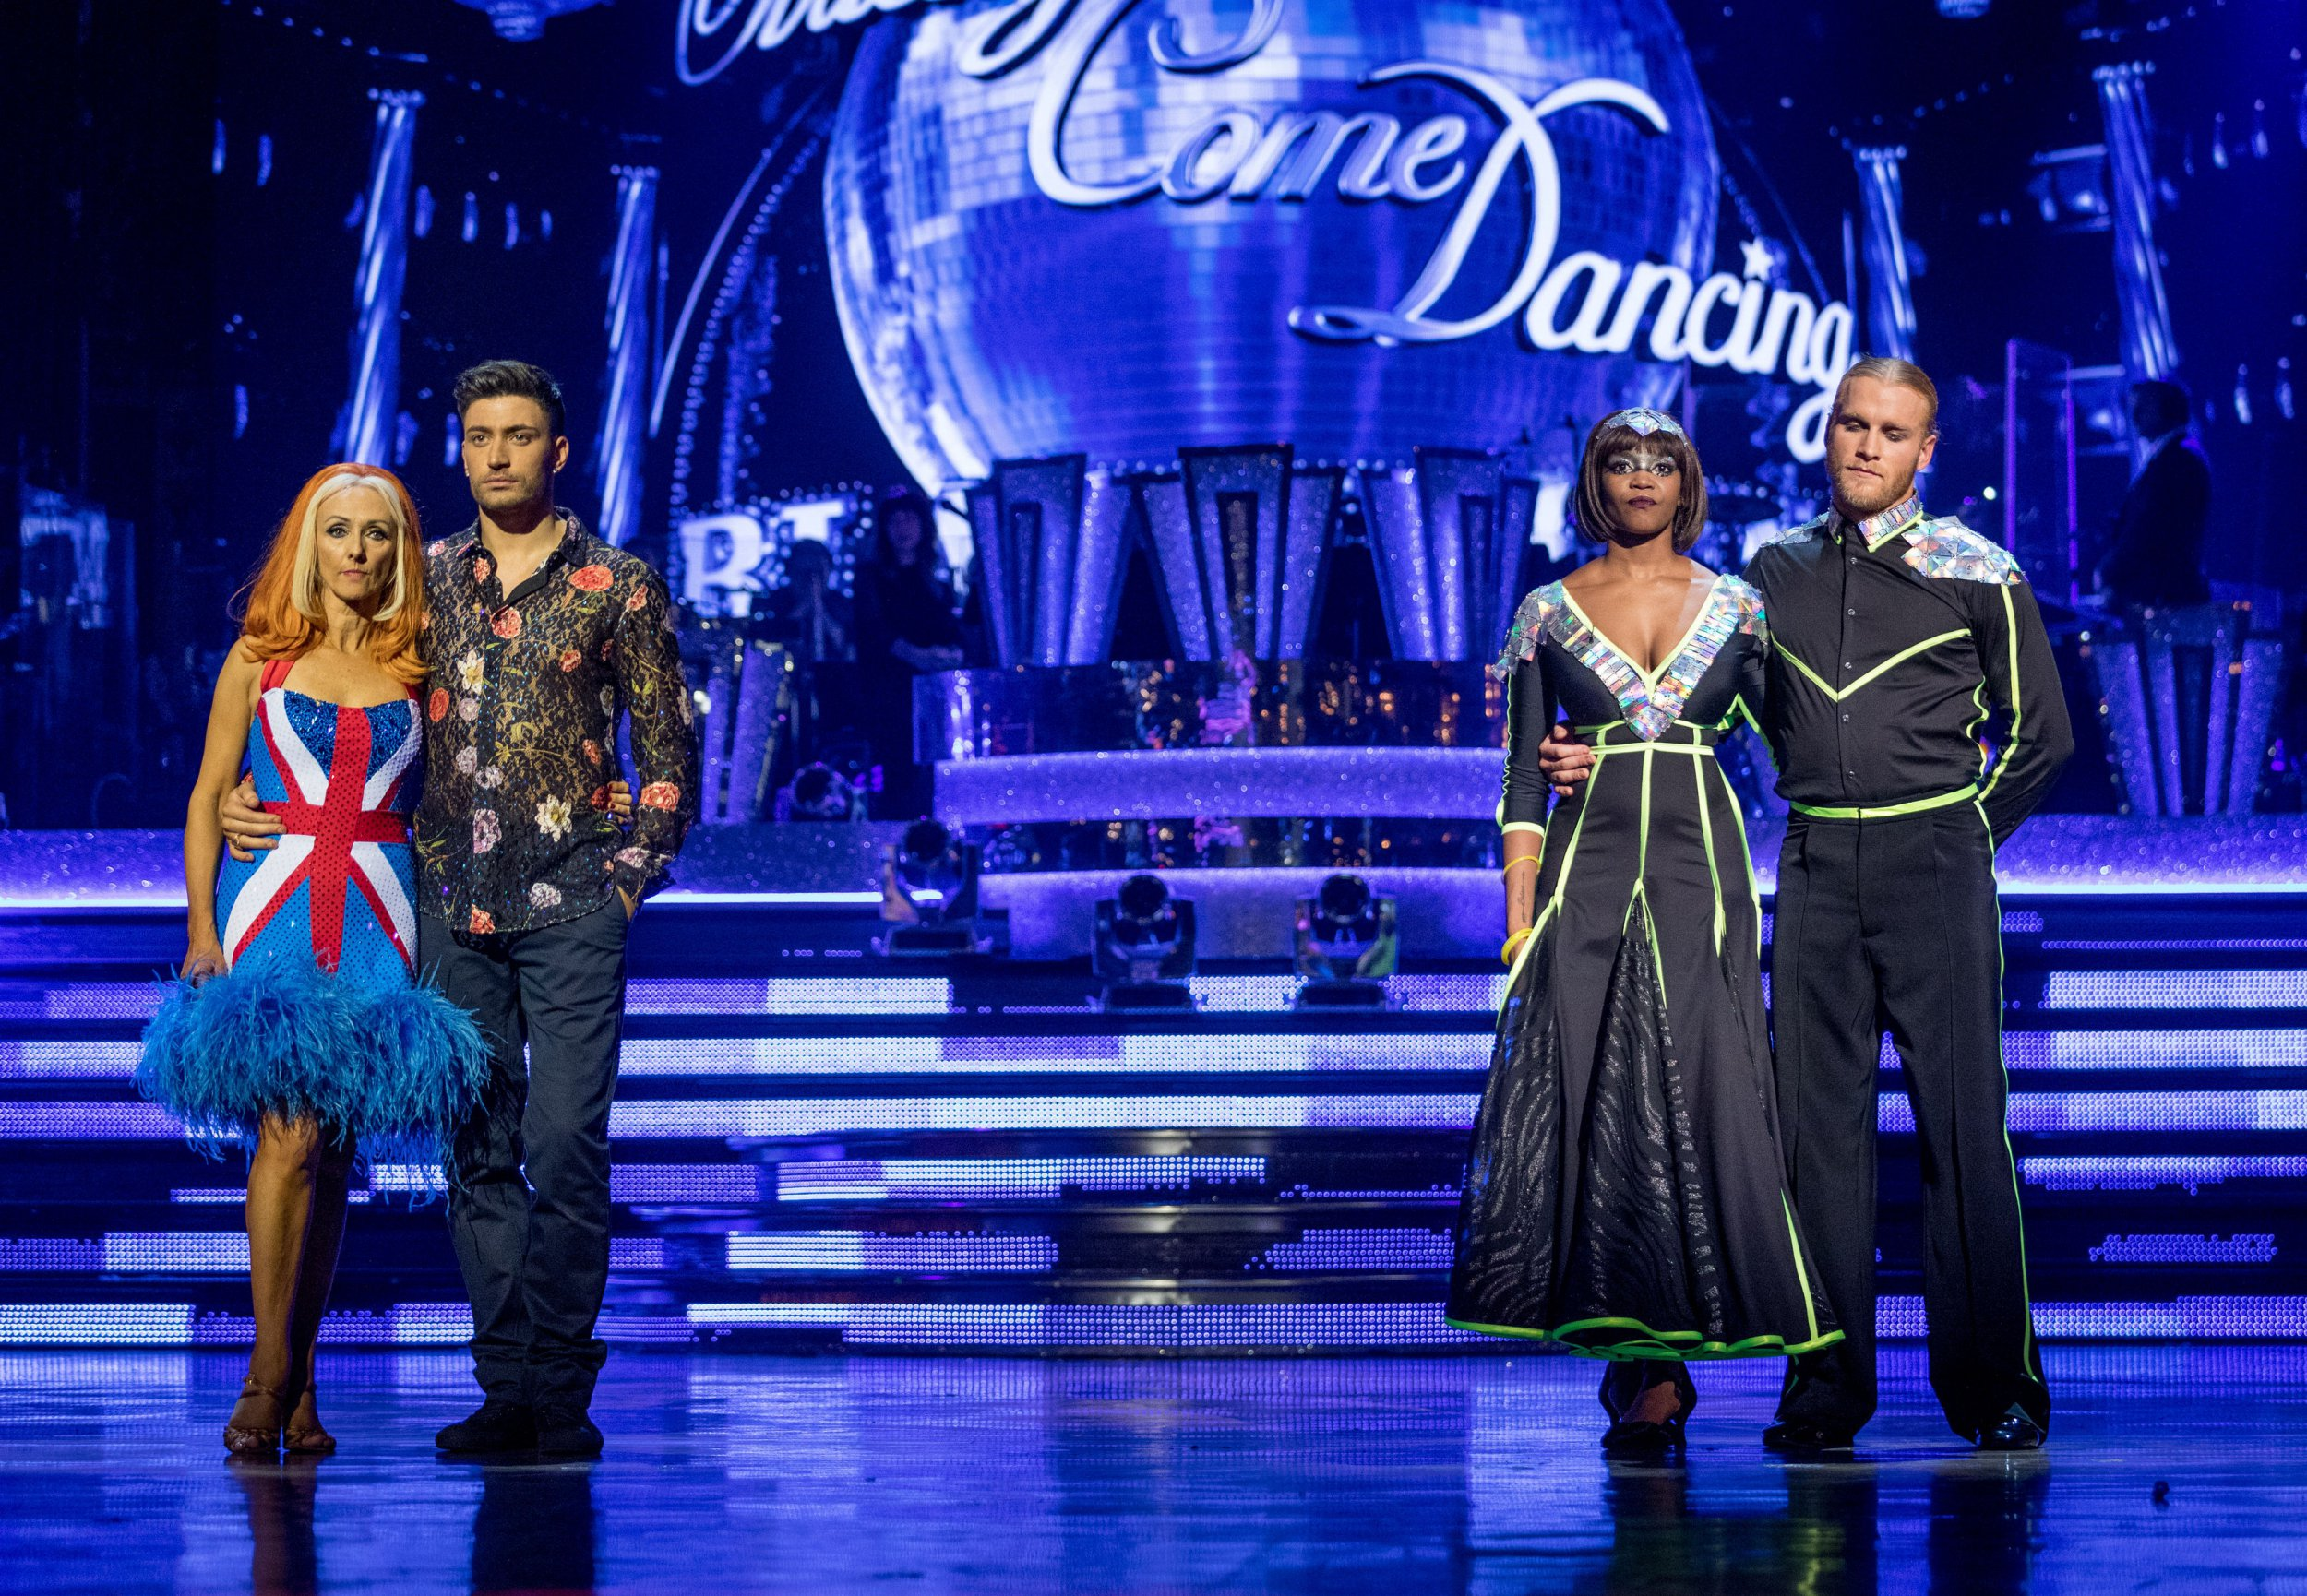 Strictly Come Dancing shock as Debbie McGee falls into the bottom two – but Jonnie Peacock is sent packing